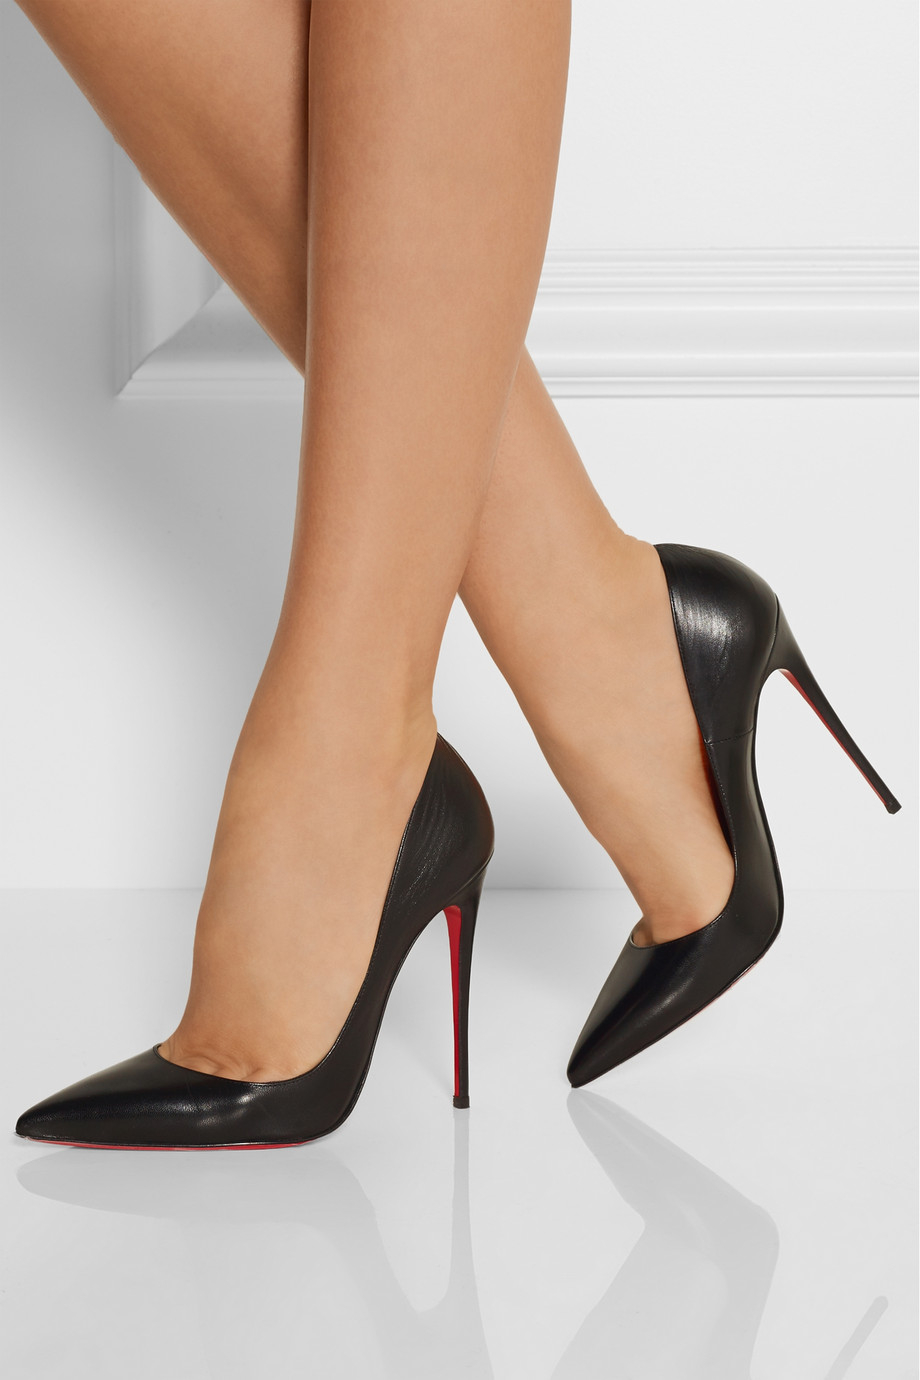 christian louboutin so kate 120 leather pumps in black lyst. Black Bedroom Furniture Sets. Home Design Ideas